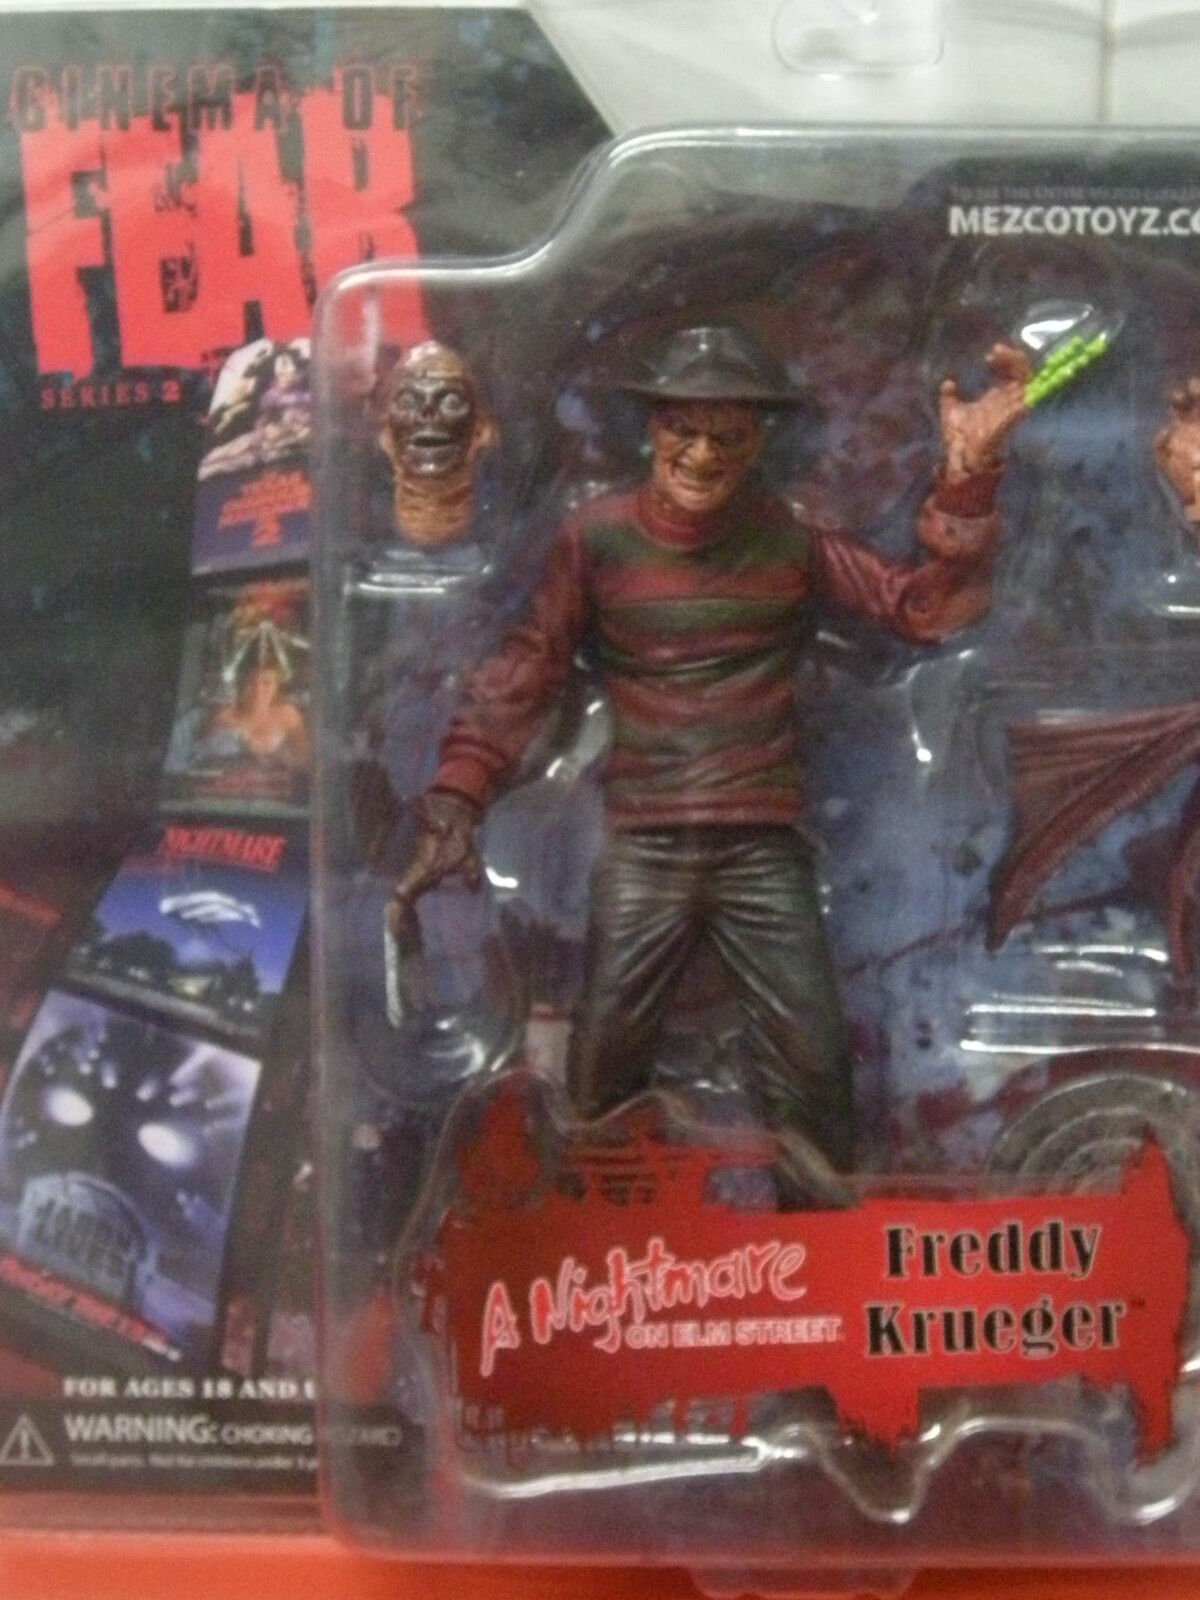 FIGURA FIGURE FEAR SERIE 2 NIGHTMARE ON ELM STREET FrotDY KRUEGER MEZCOTOYS NEW